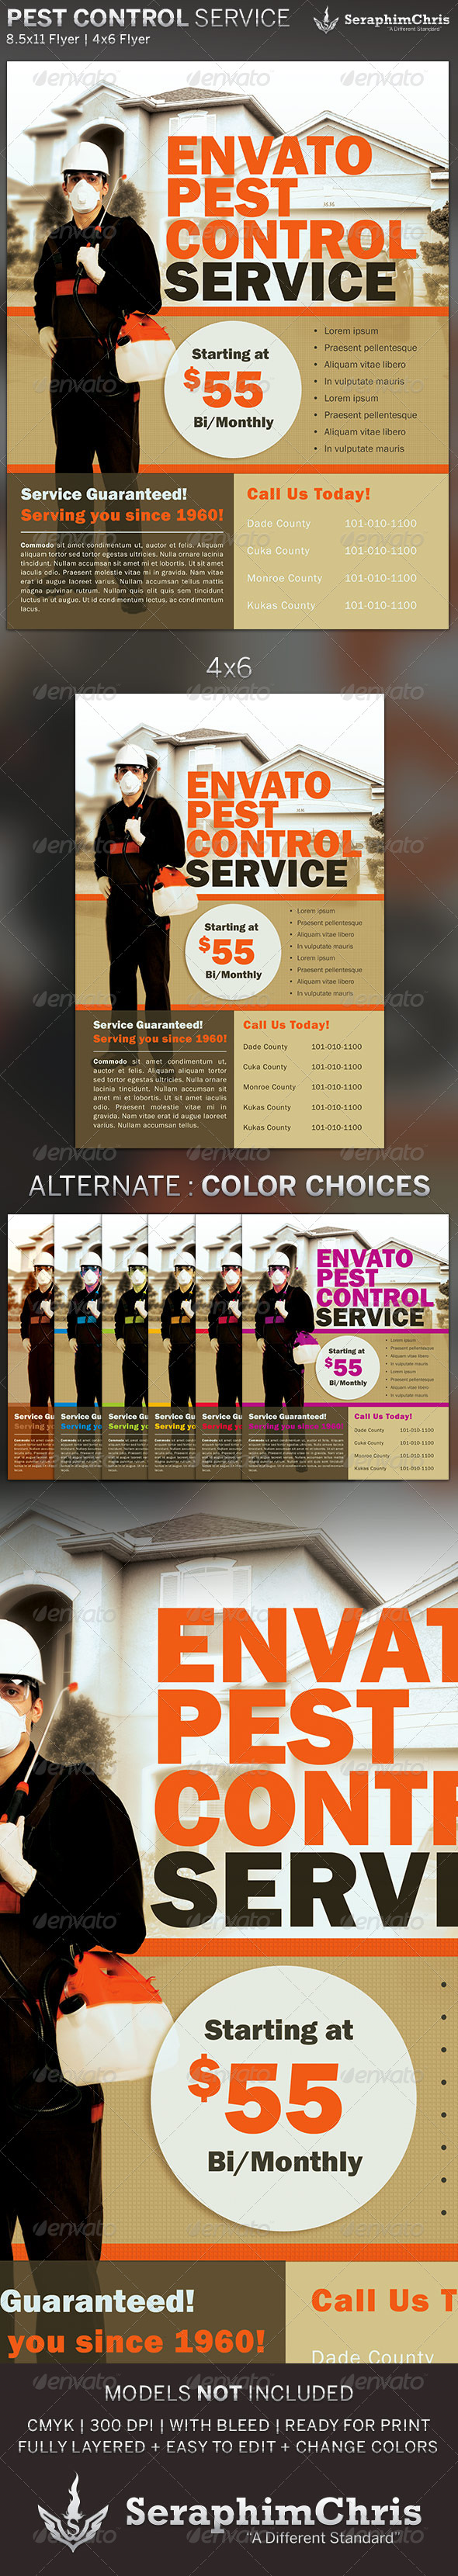 Pest Control Service Flyer Template by SeraphimChris | GraphicRiver